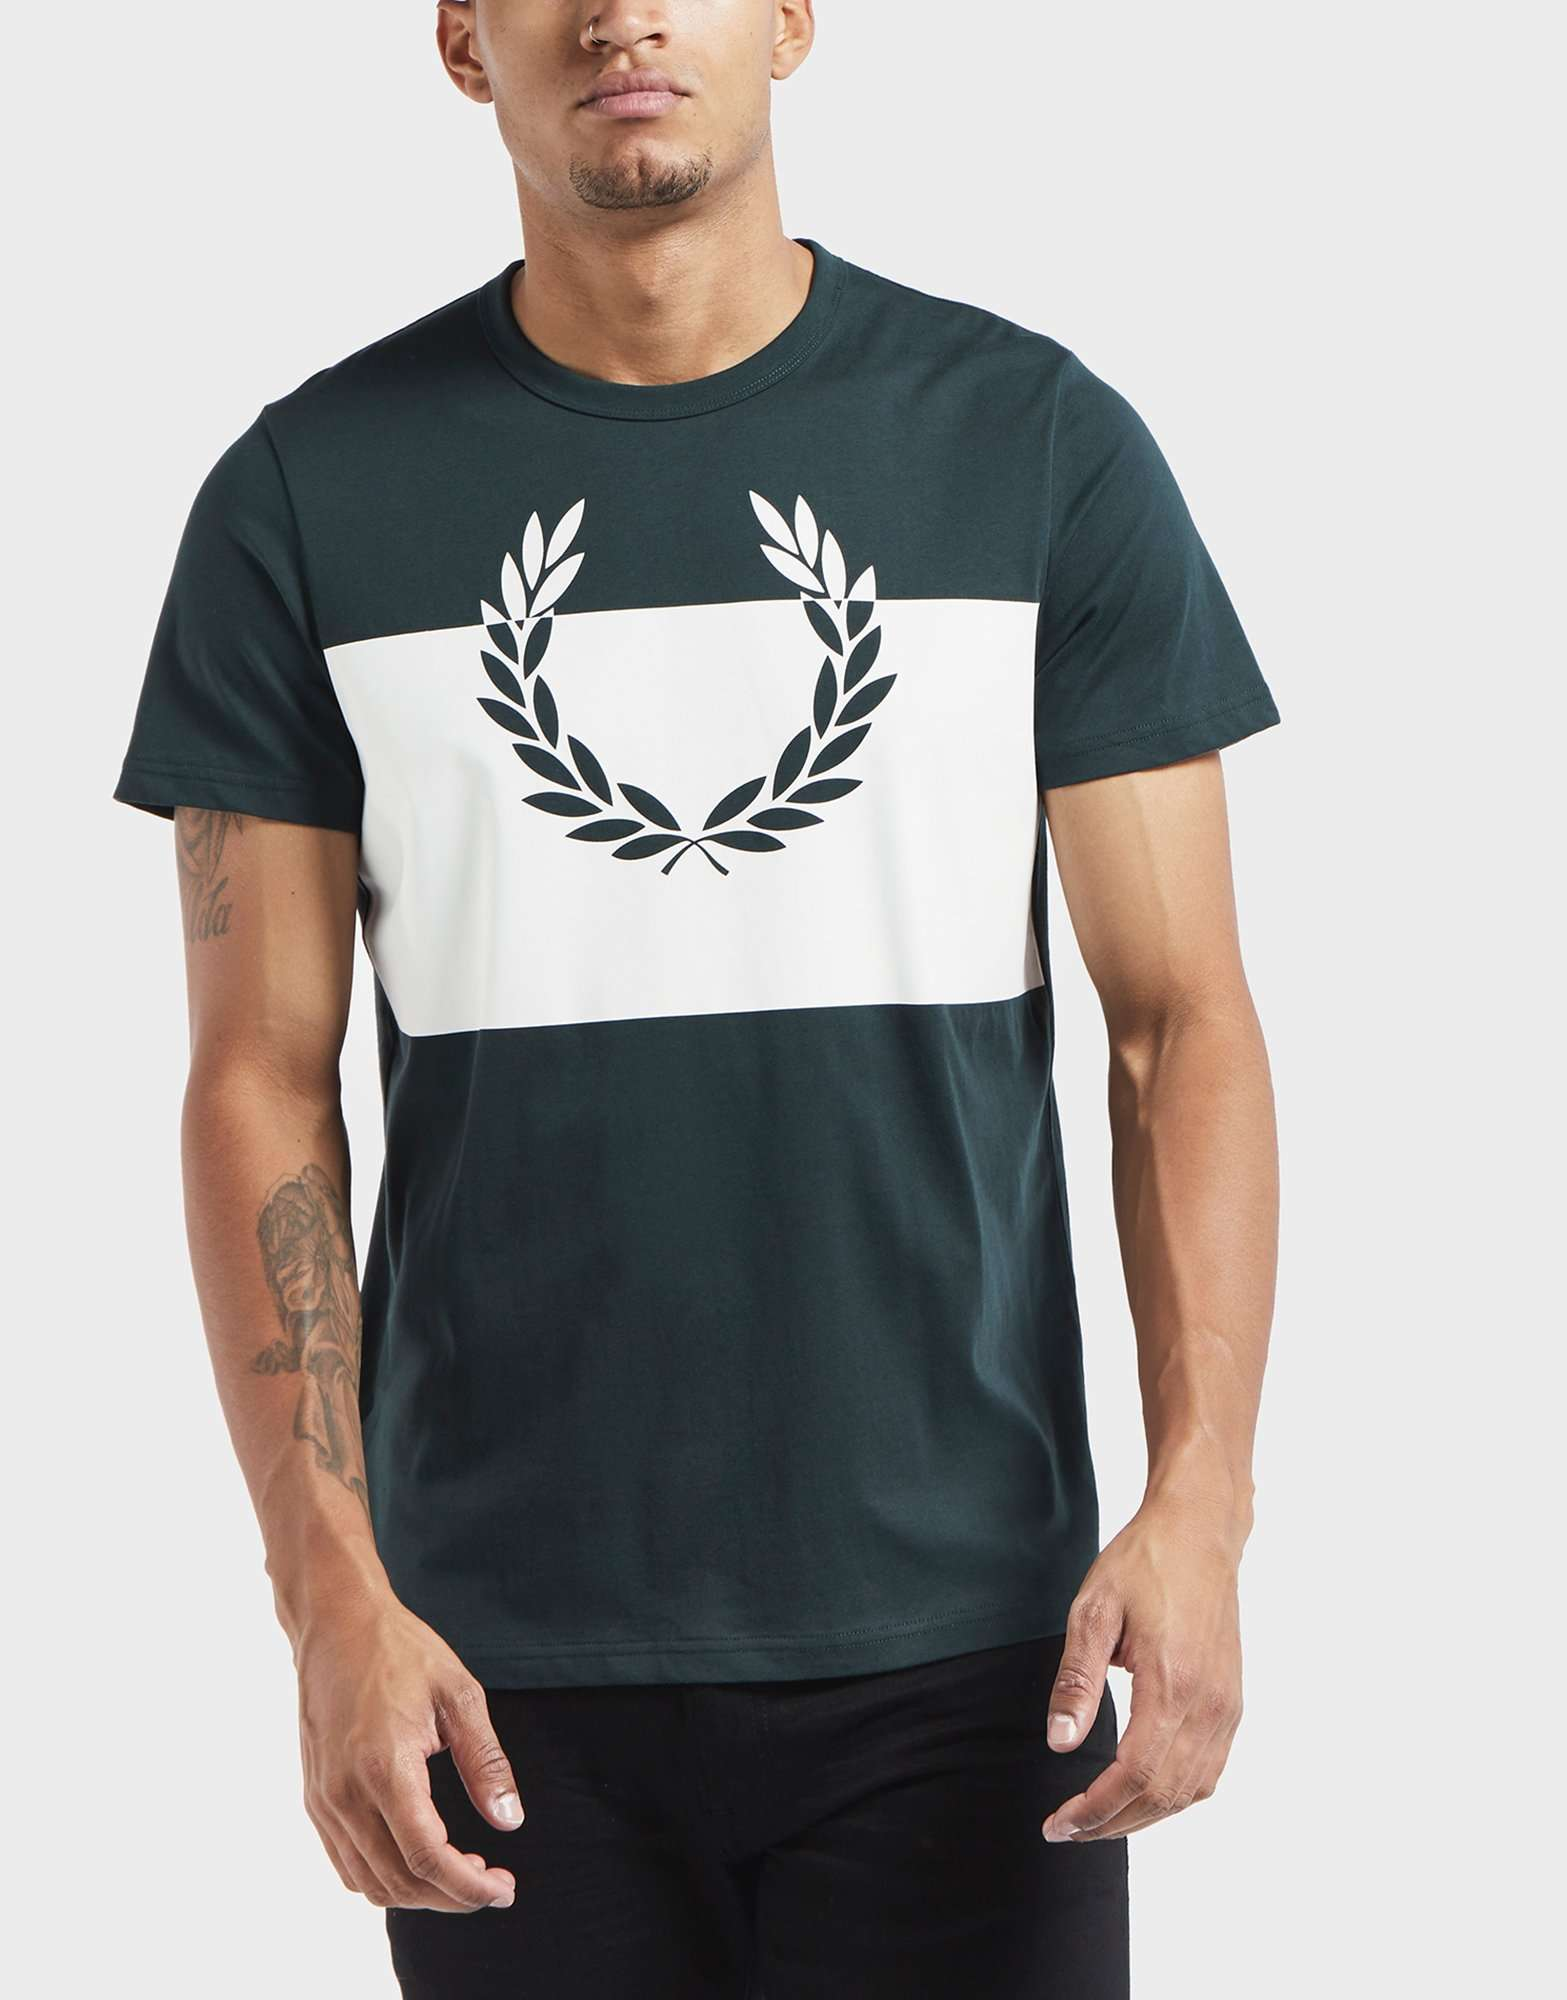 Fred Perry Laurel Block Short Sleeve T-Shirt